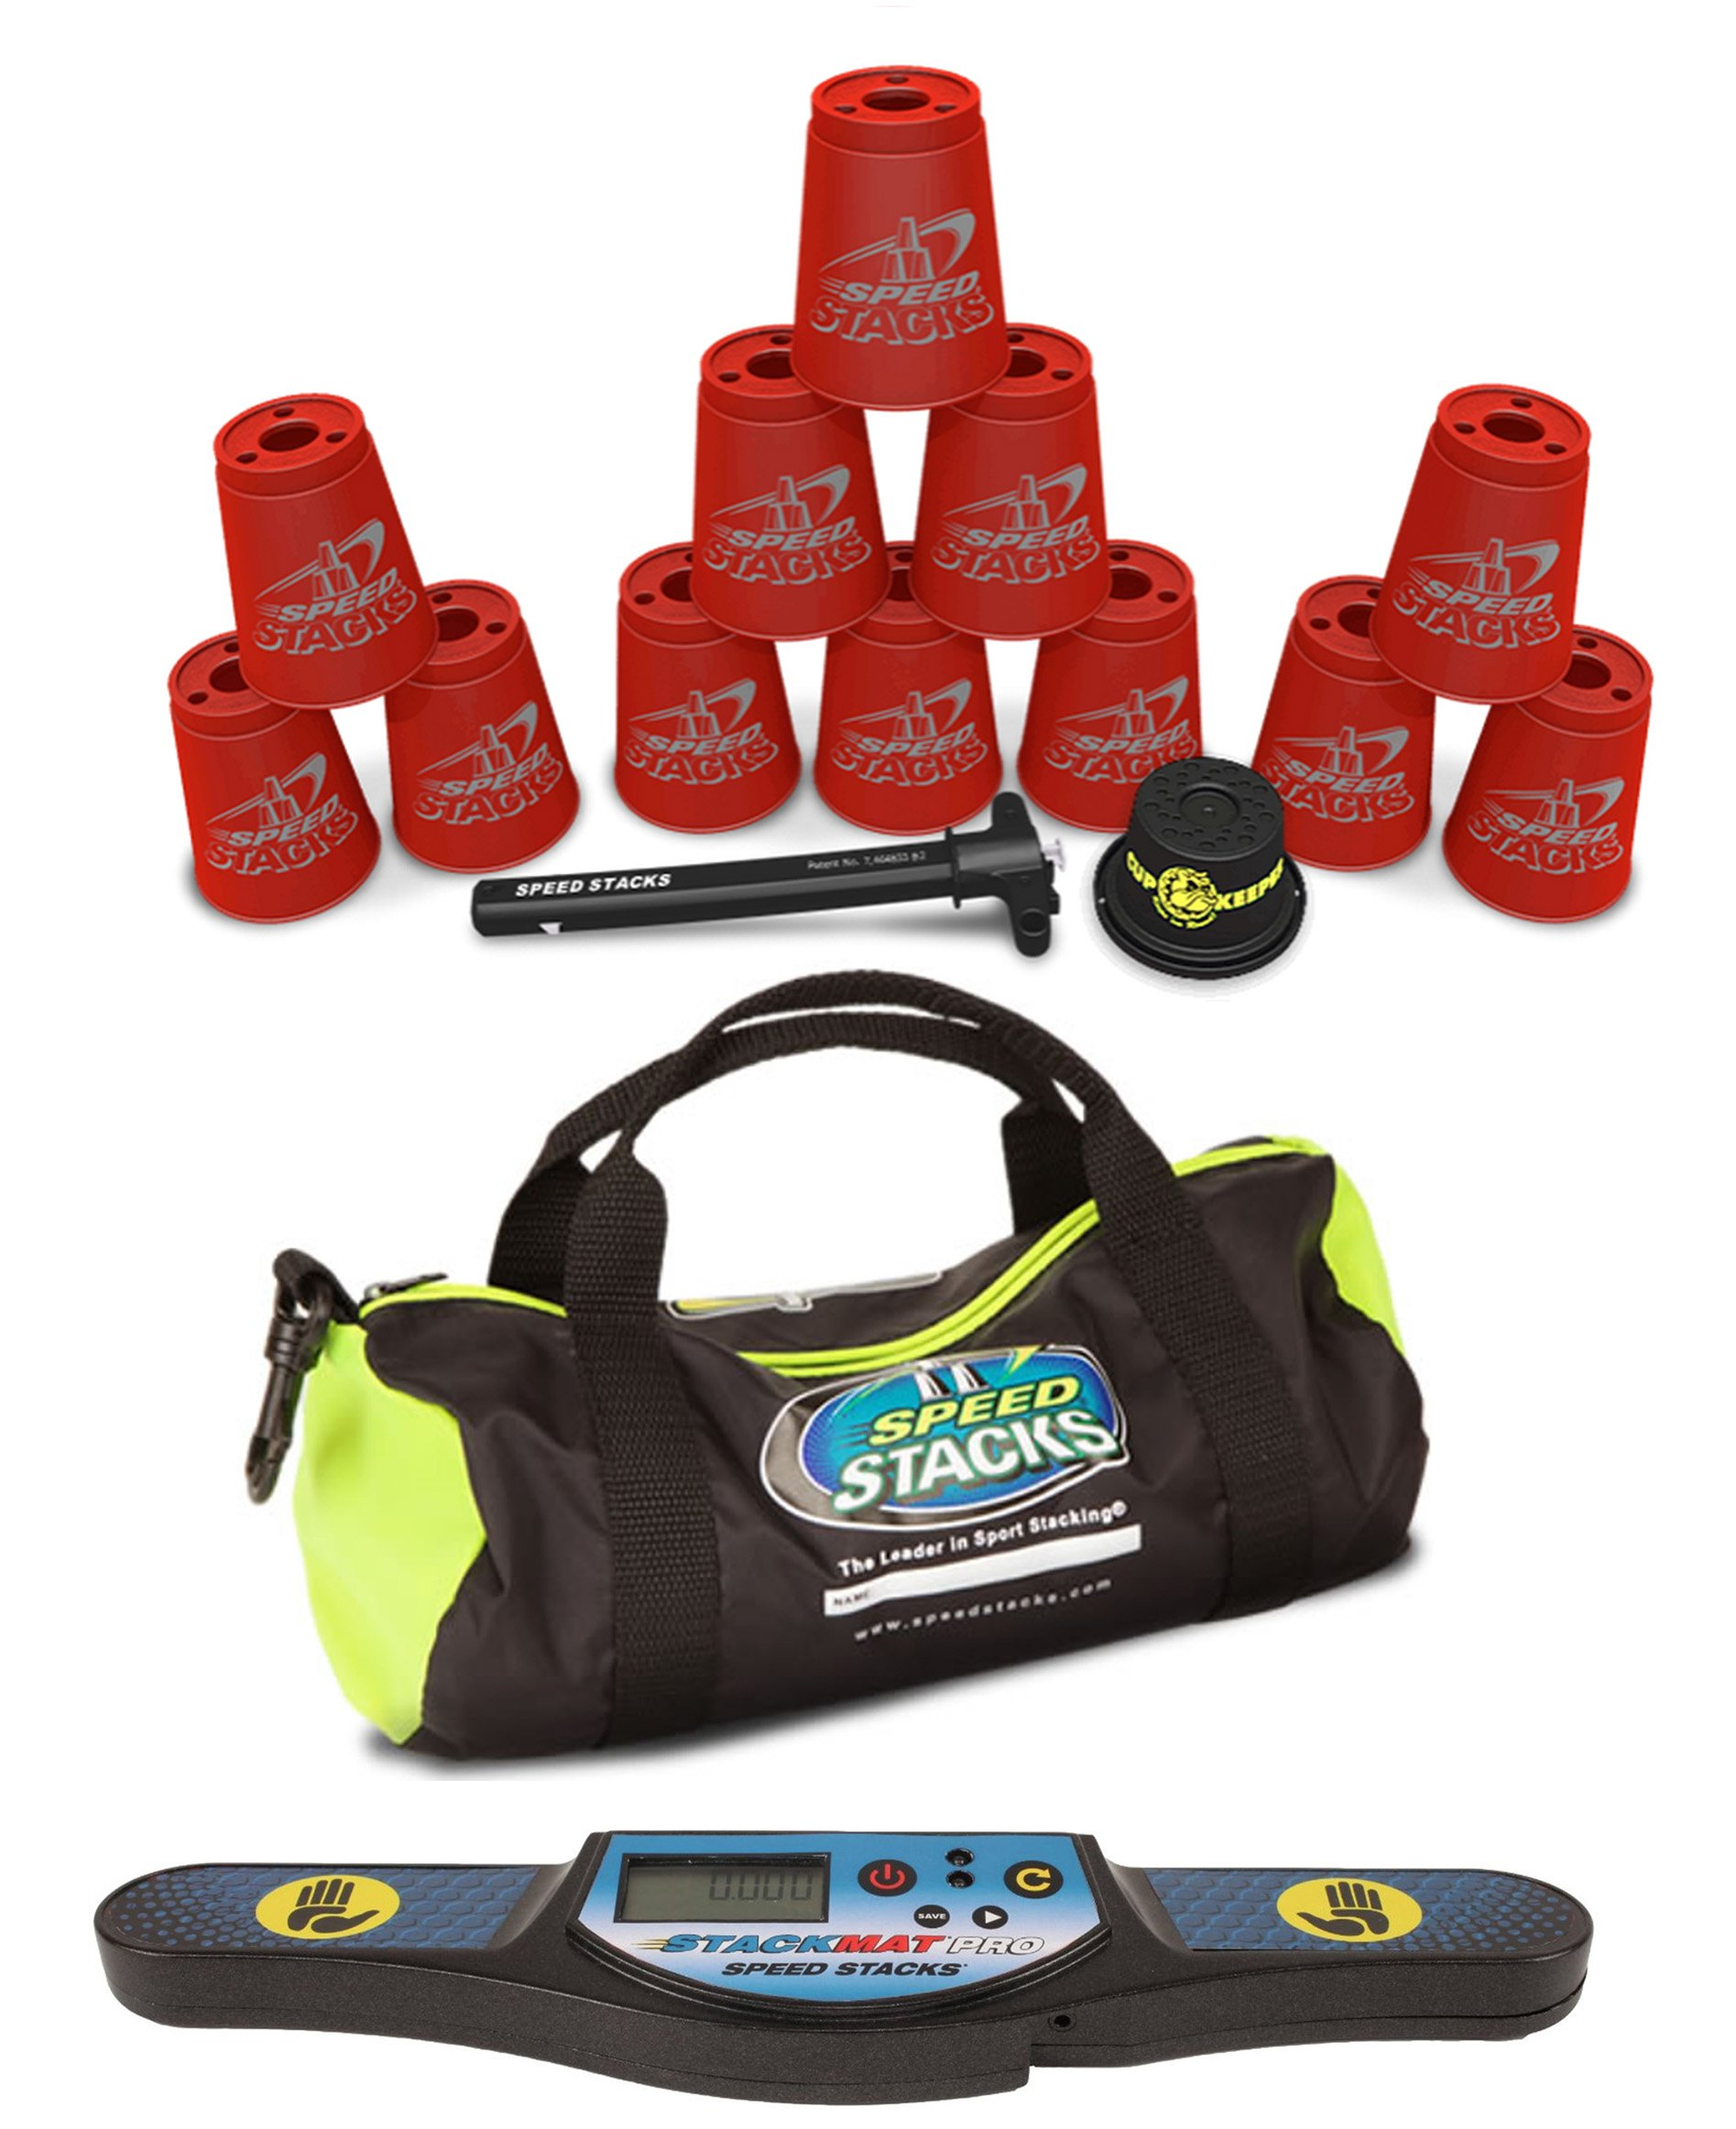 Speed Stacks Custom Combo Set: 12 REALLY RED Cups, StackMat Pro Timer, Cup Keeper, Quick Release Stem, Gear Bag